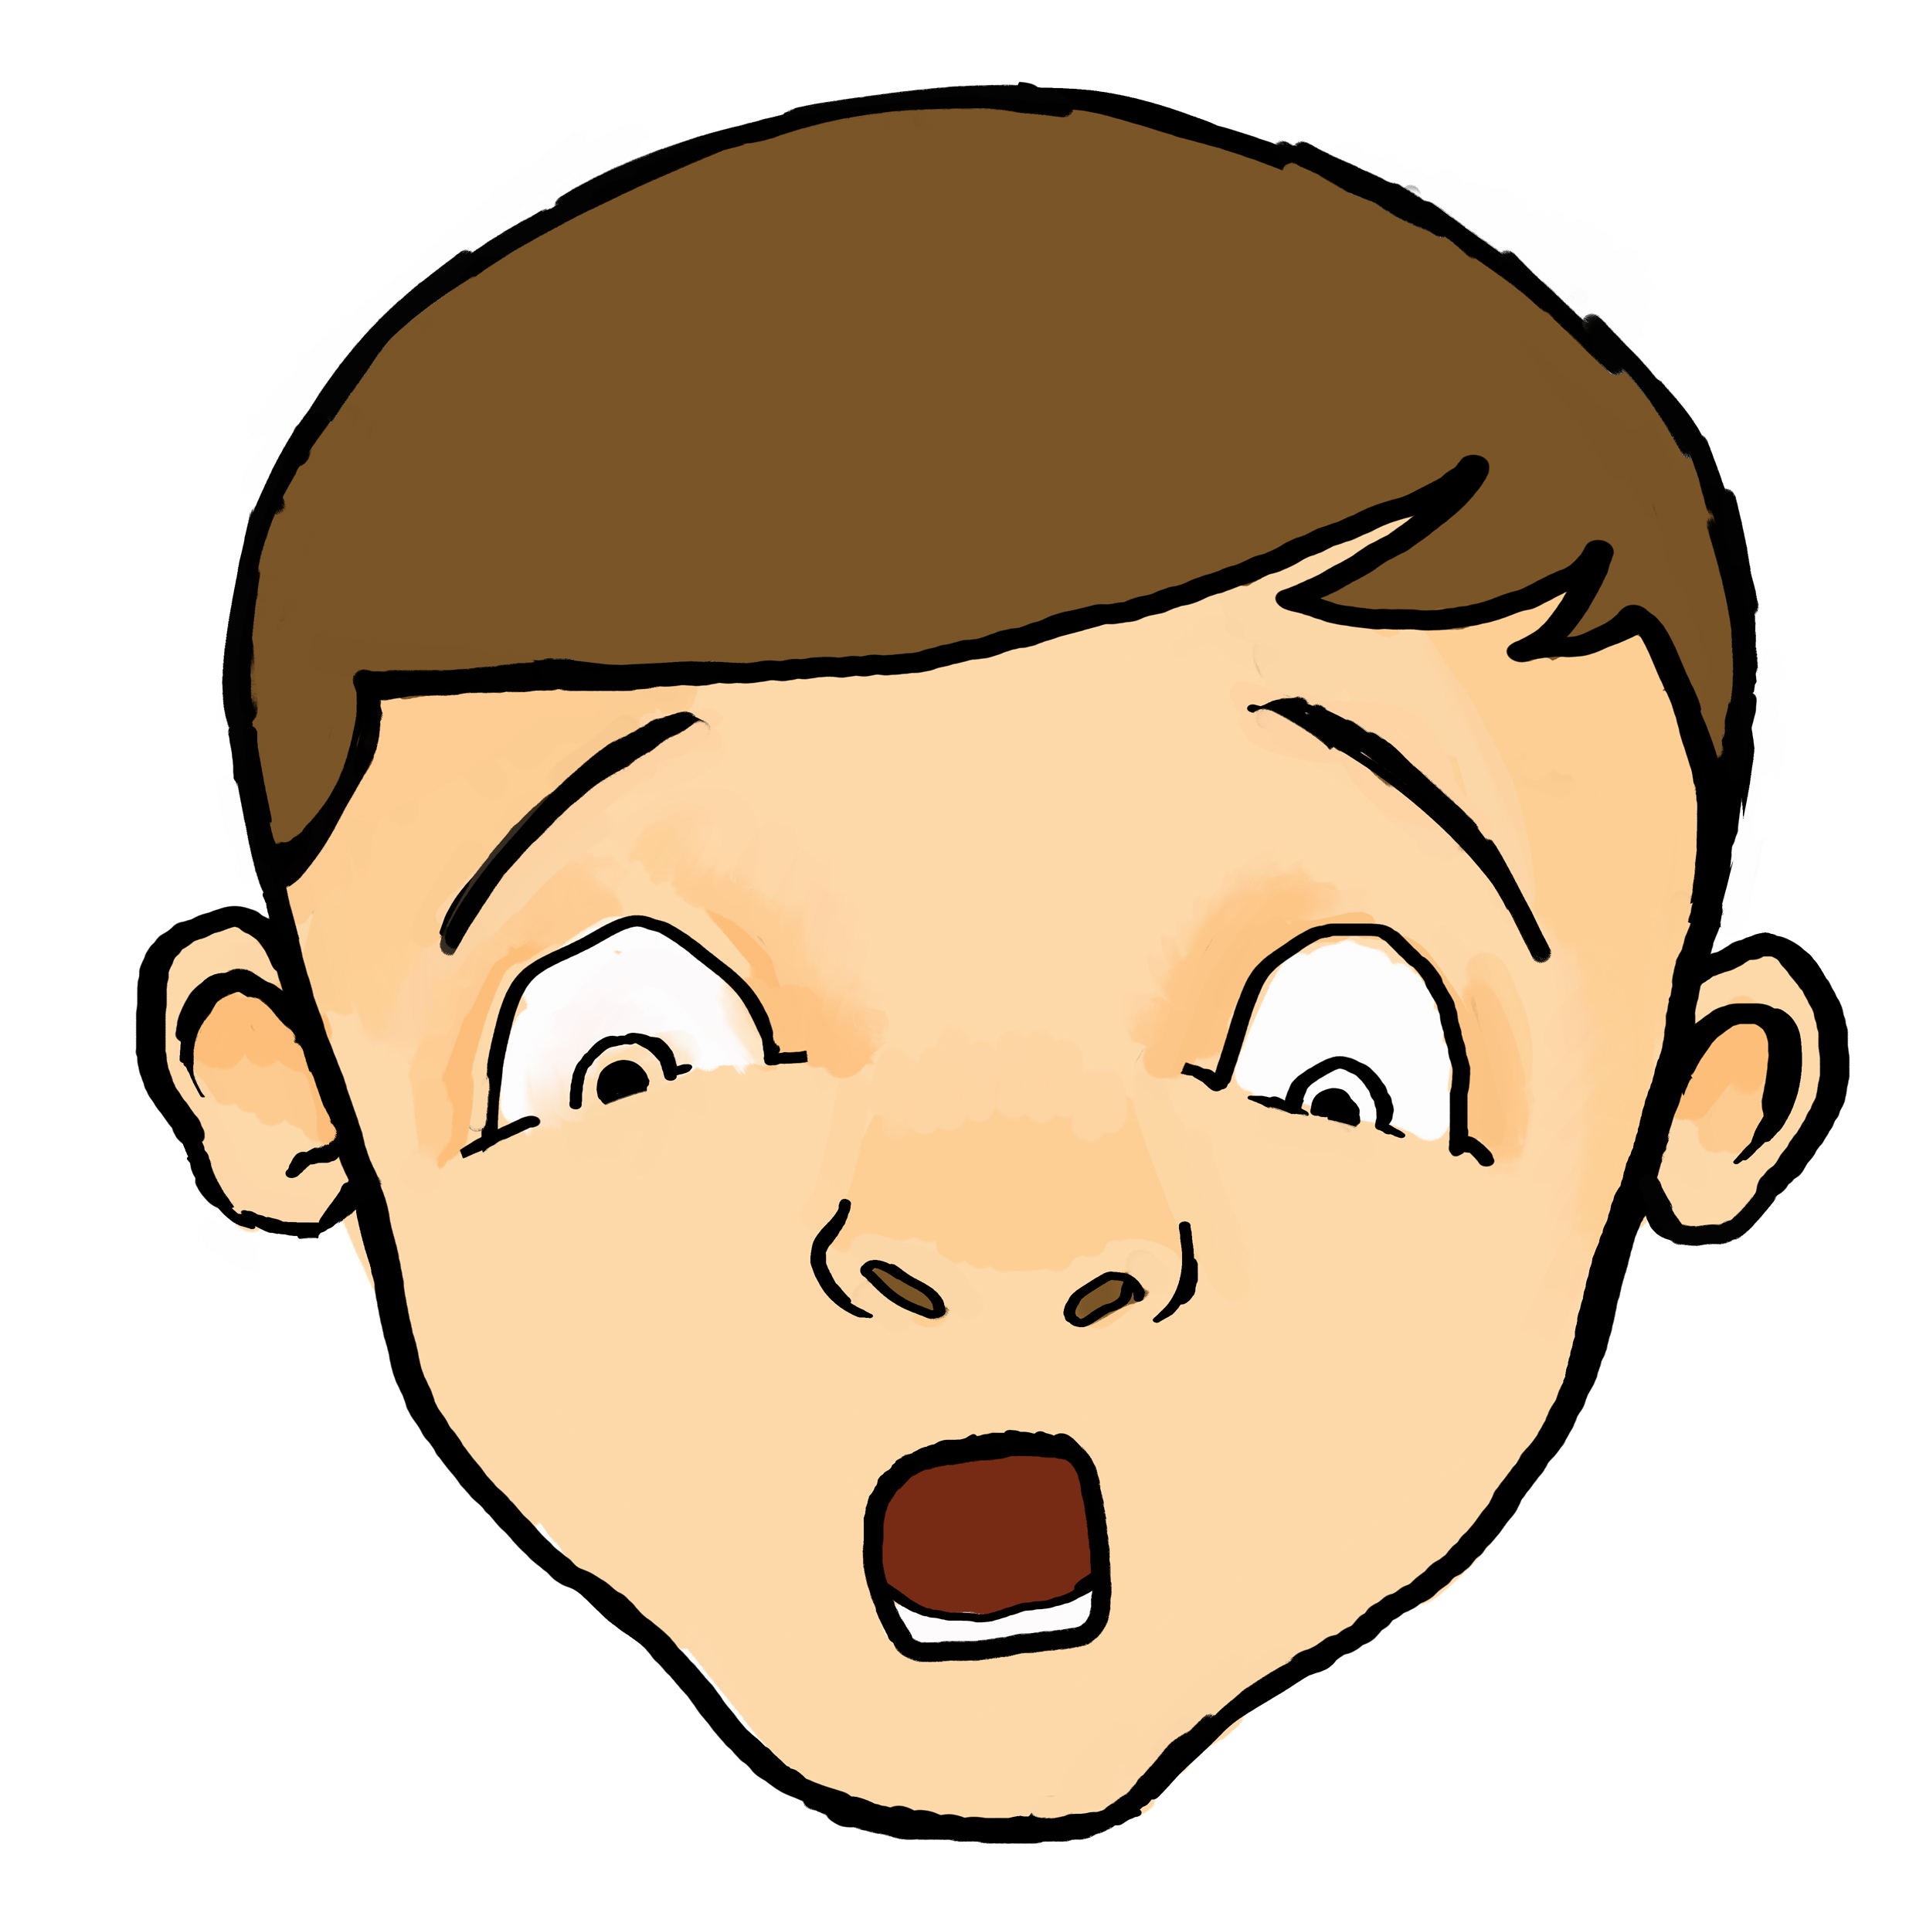 Happy face free images. Chin clipart kid